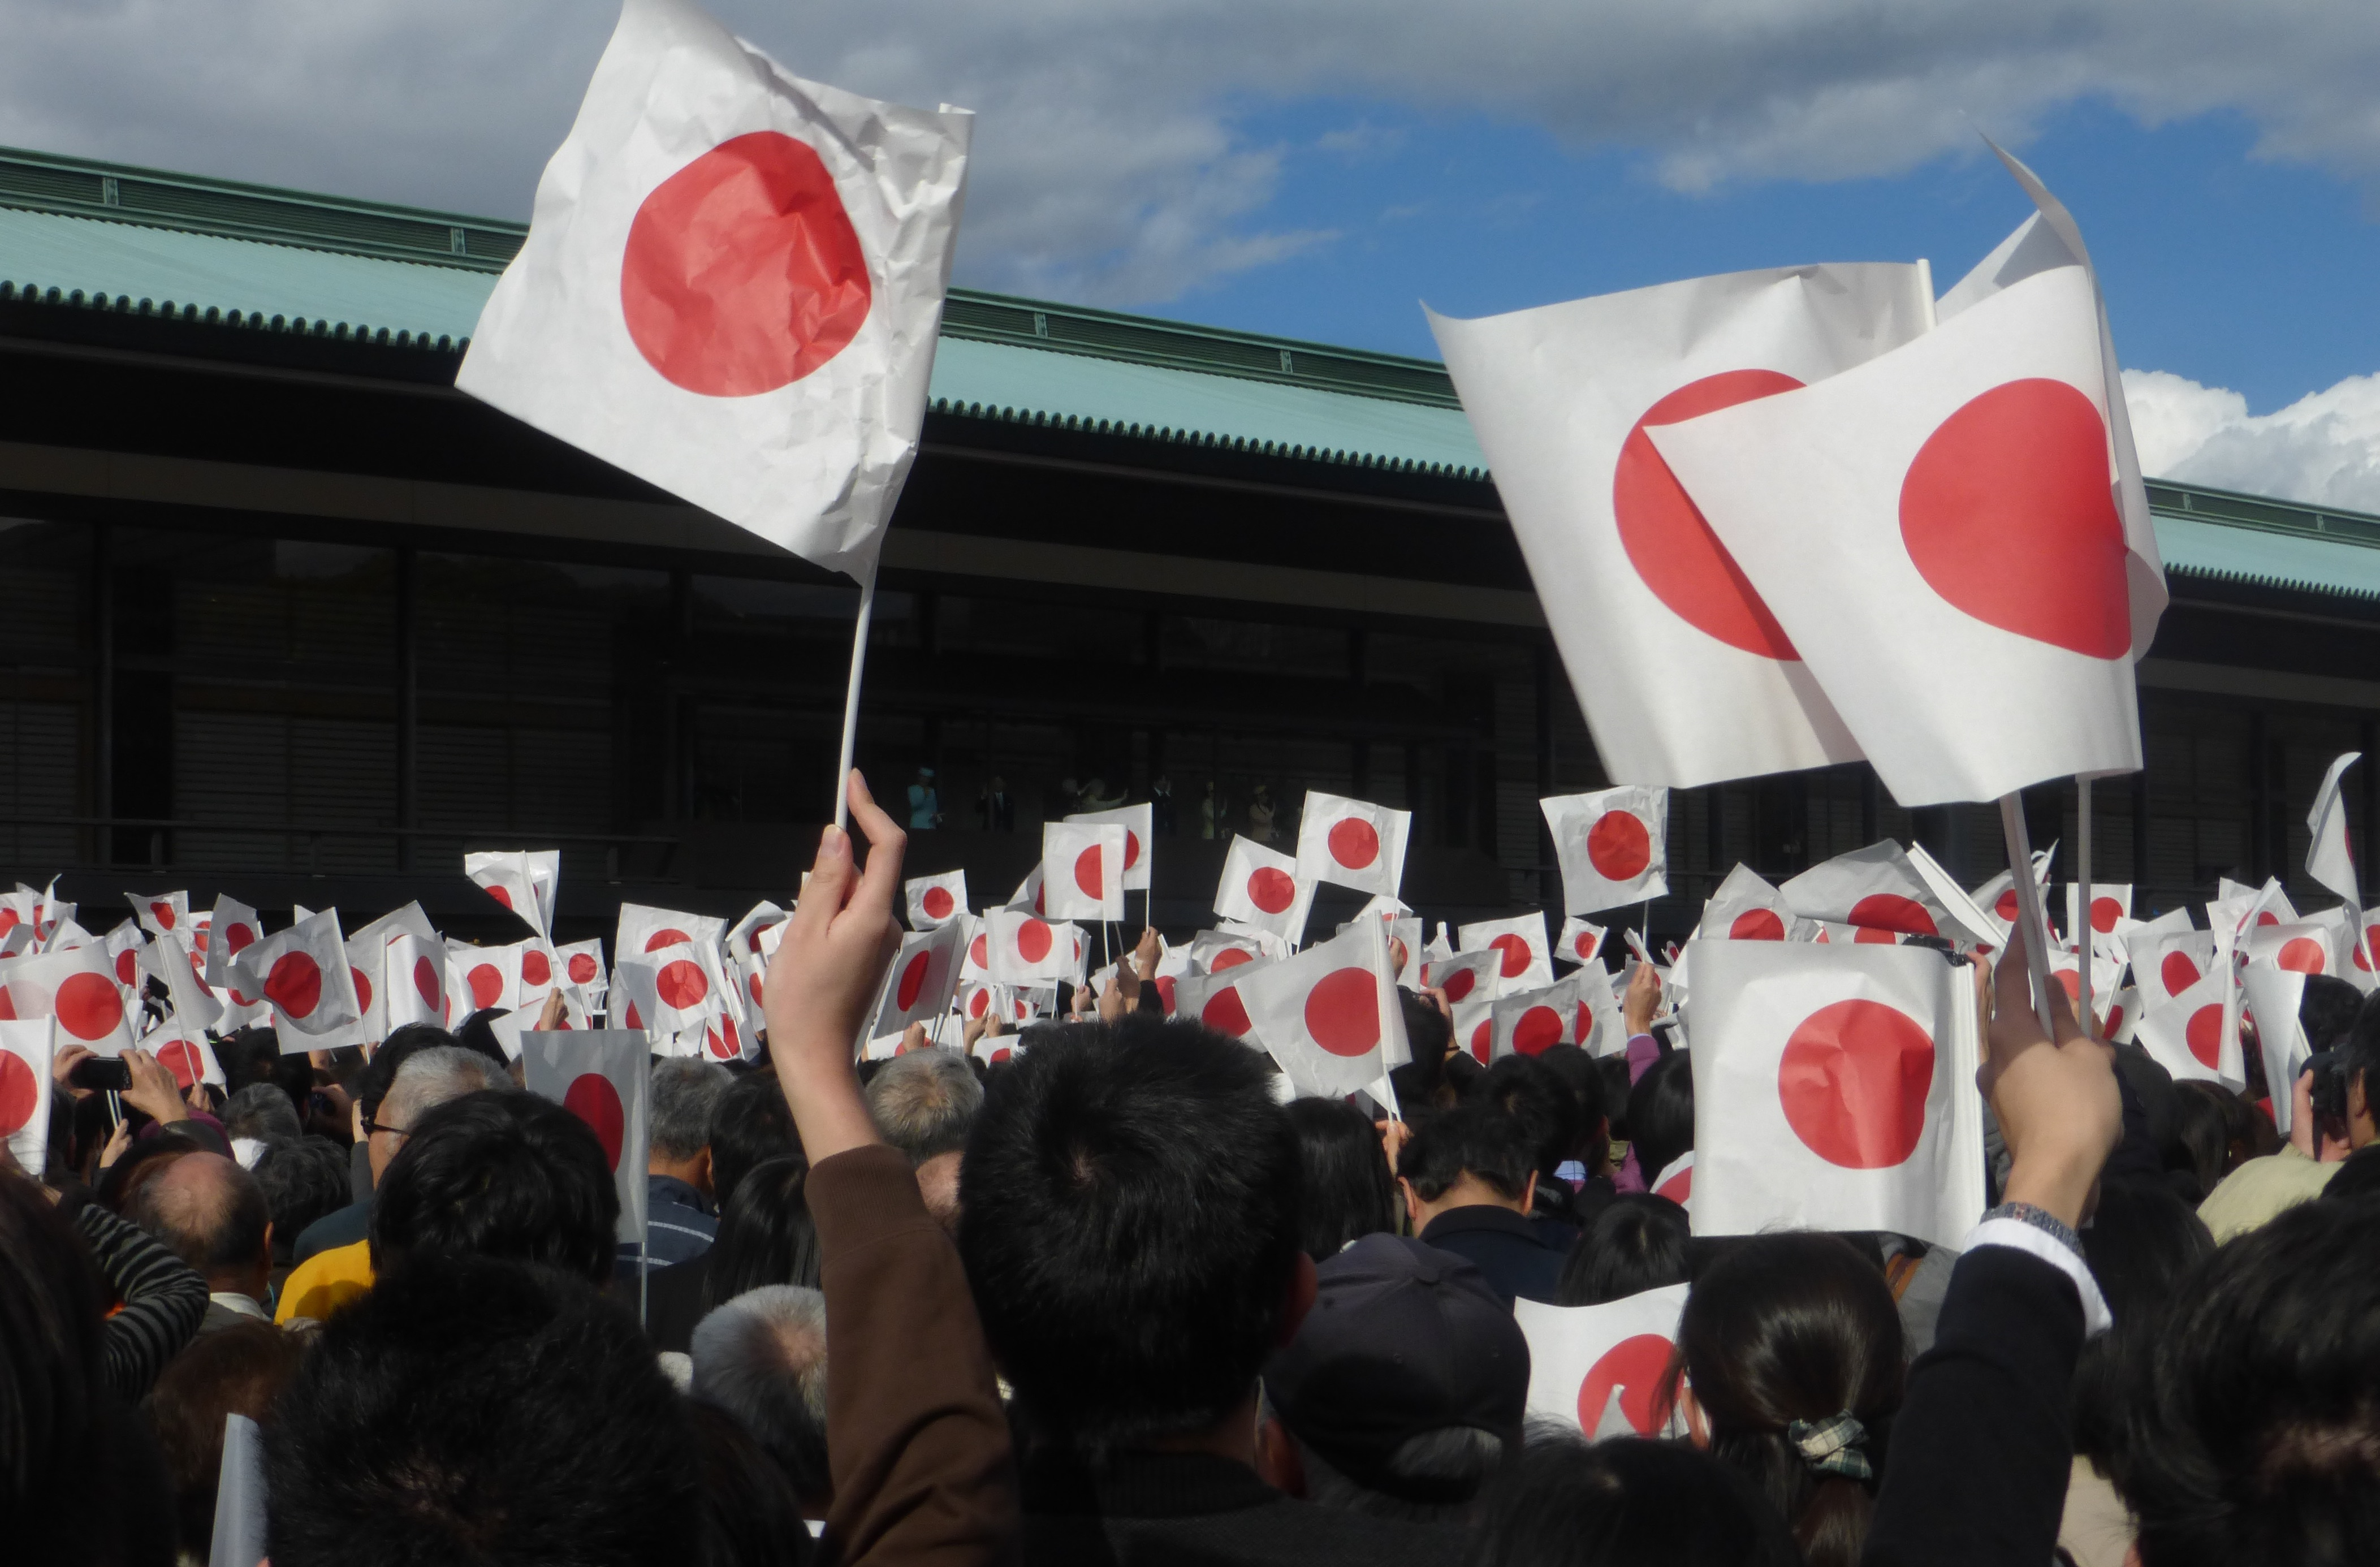 Prime Minister Shinzo Abe and the JDF: The Regional Implications of Repealing Article 9